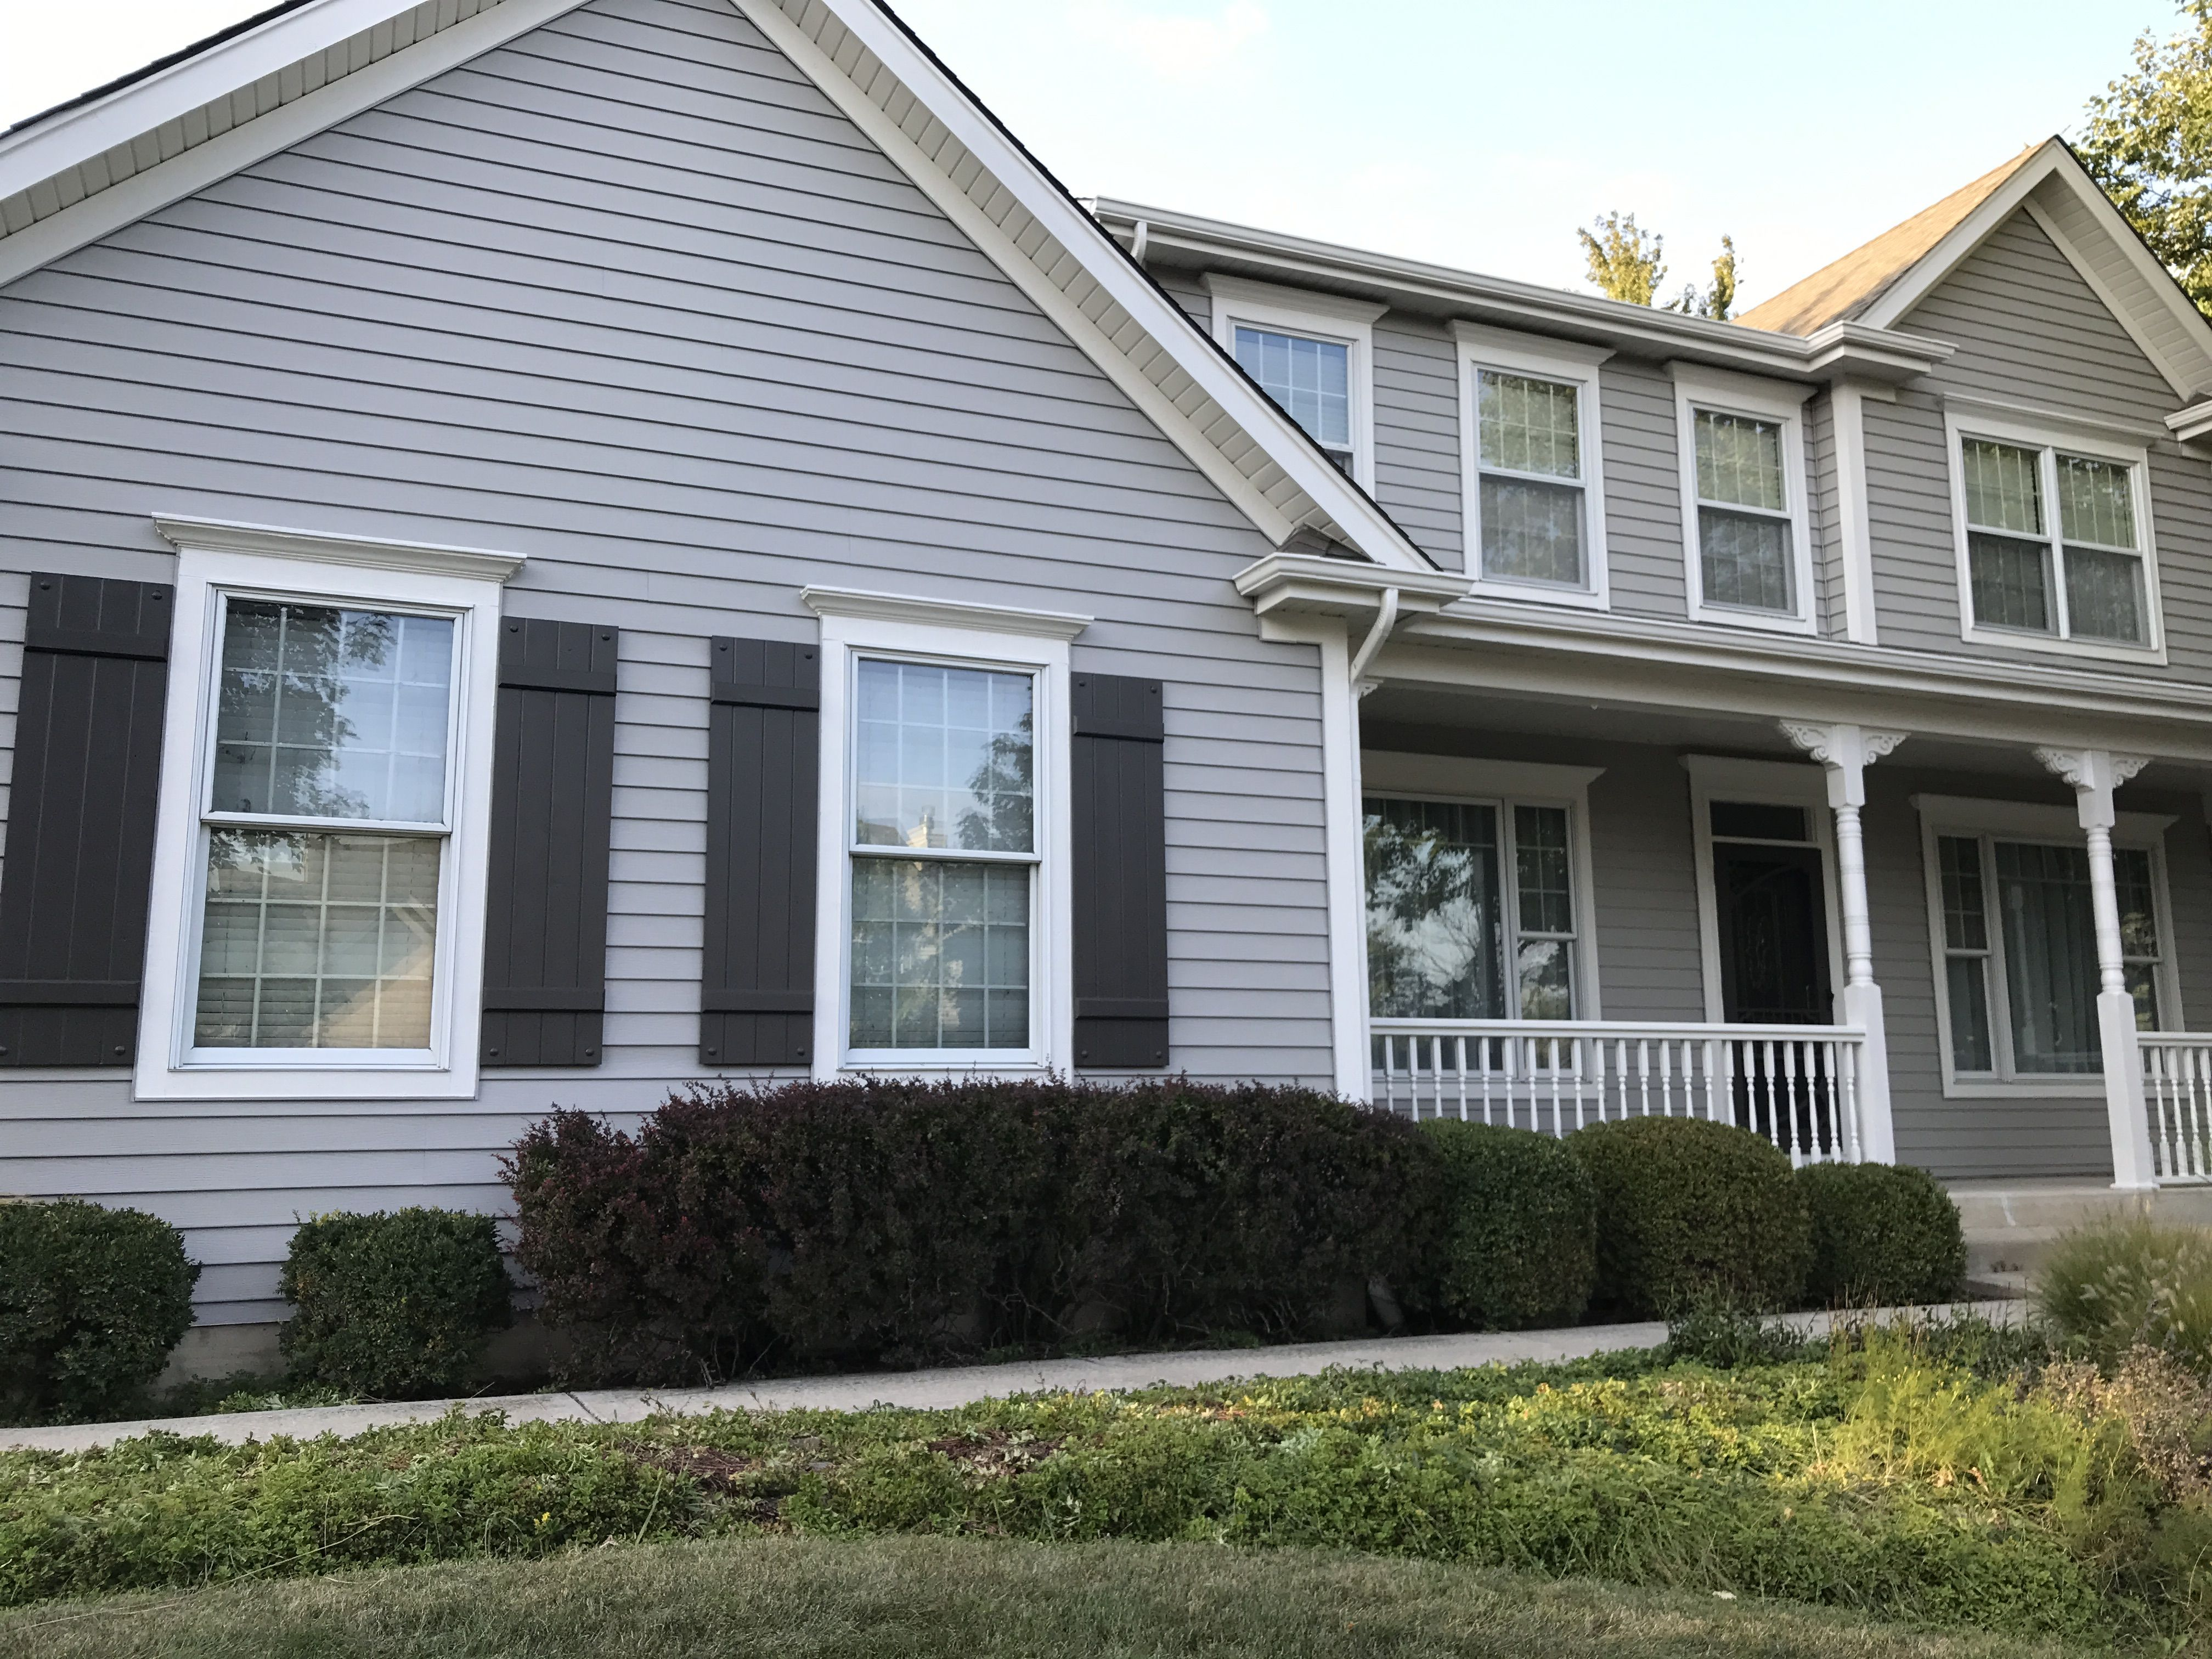 Door And Shutters Sw Black Fox 7020 Siding Sw Dorian Gray 7017 Trim Sw Pearly White Home Exterior Makeover Gray House Exterior Grey Exterior